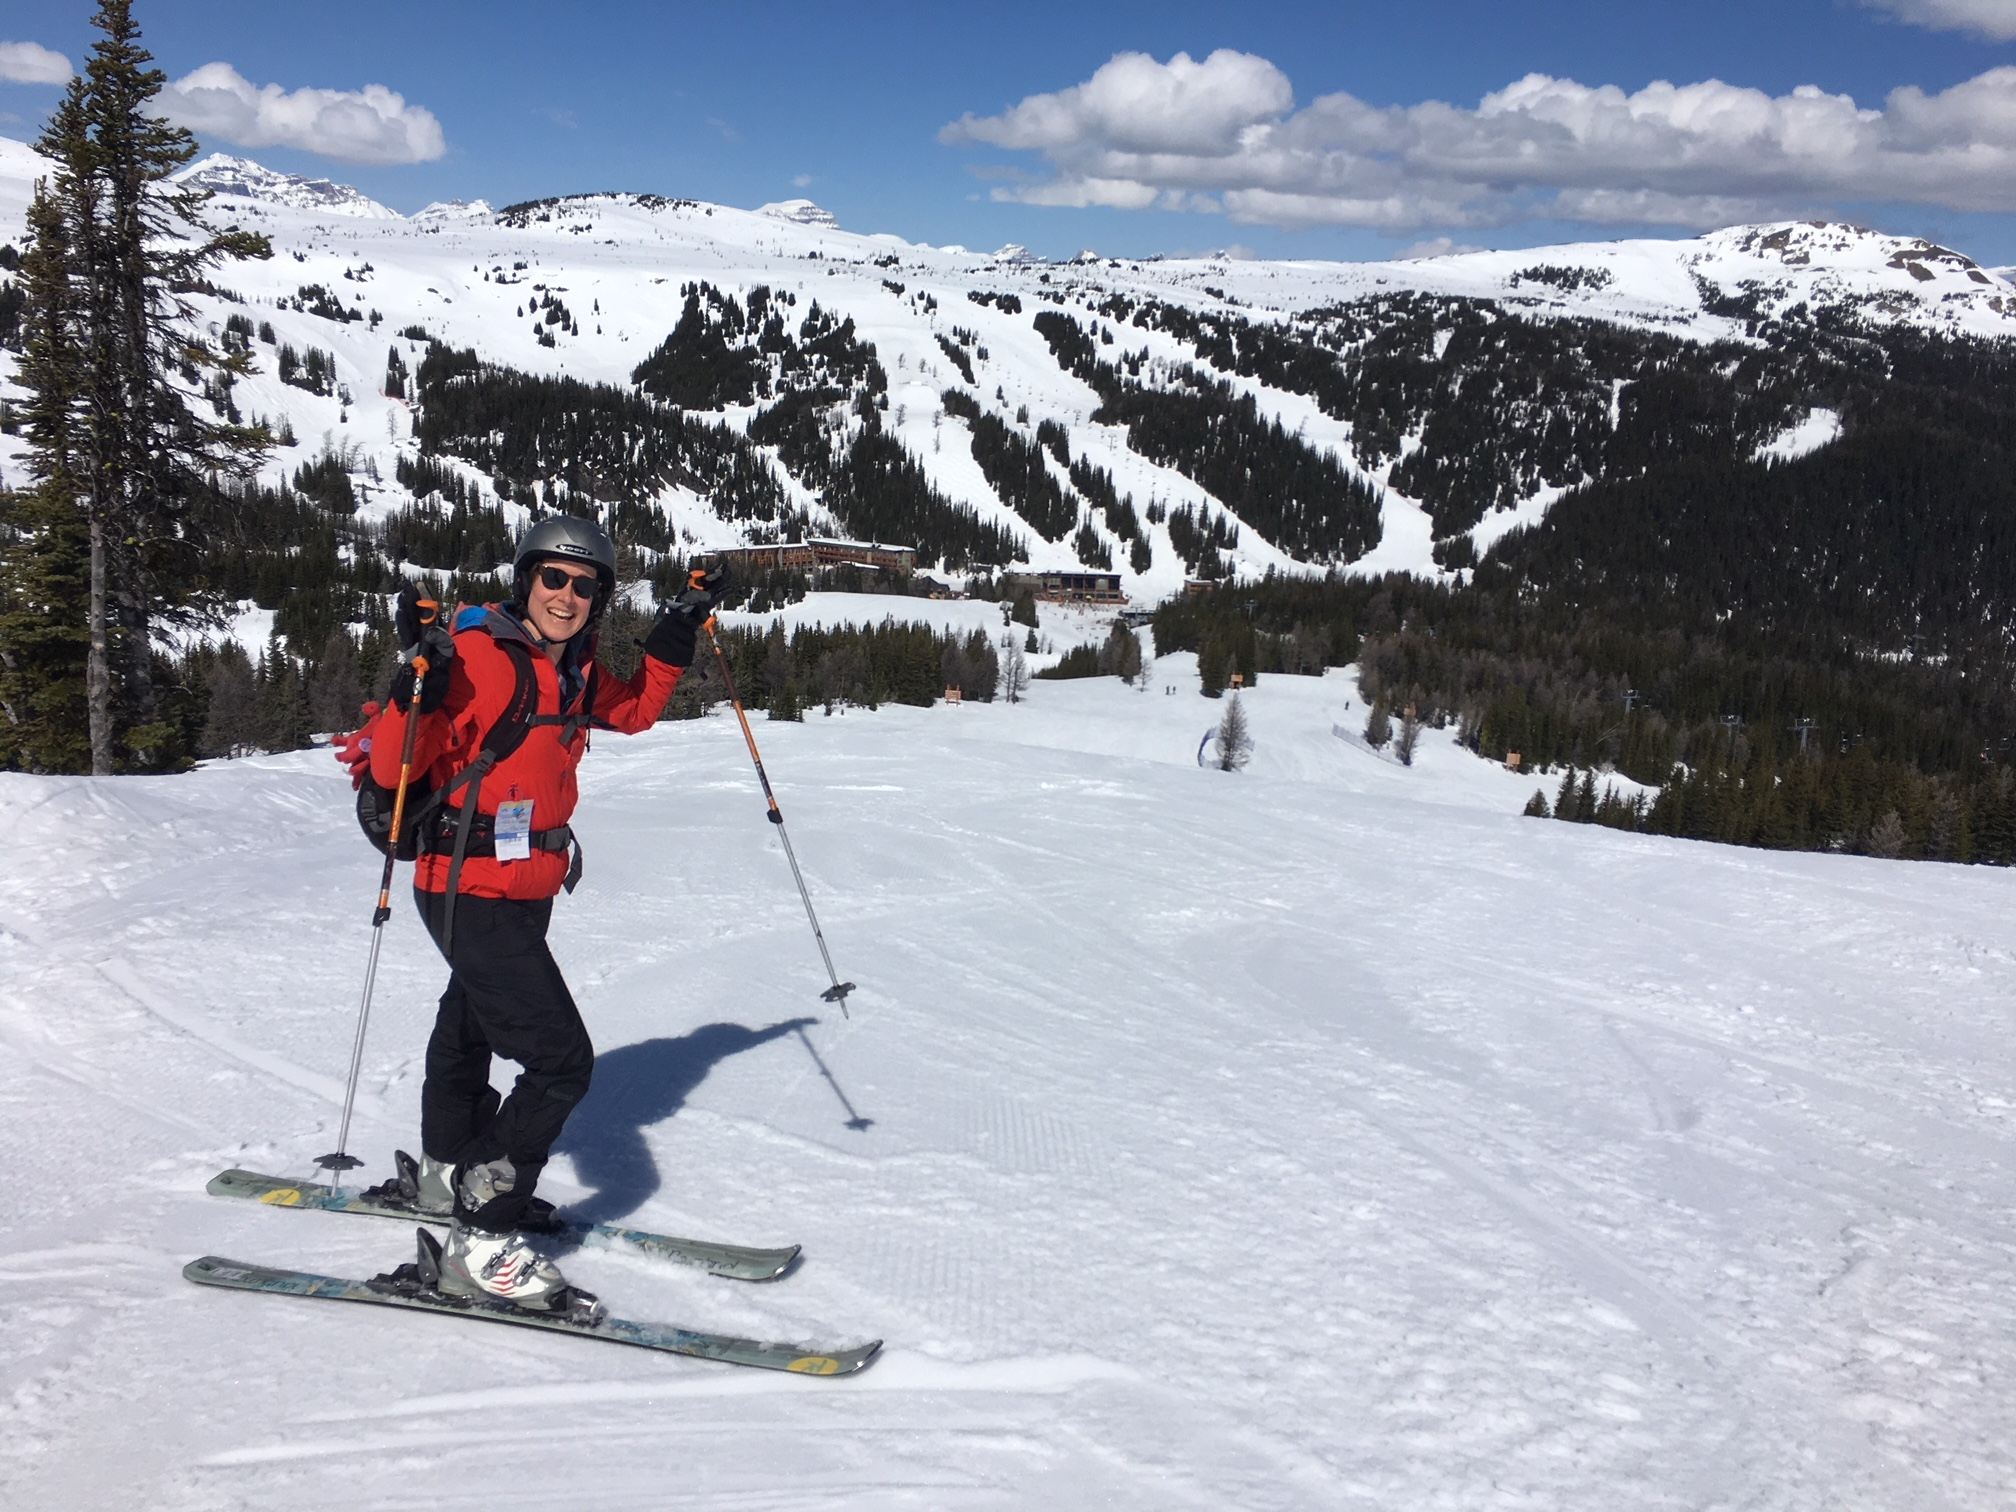 Liz & Rory enjoying fine Canadian spring skiing at Sunshine. Photo by Dave Knudsen.